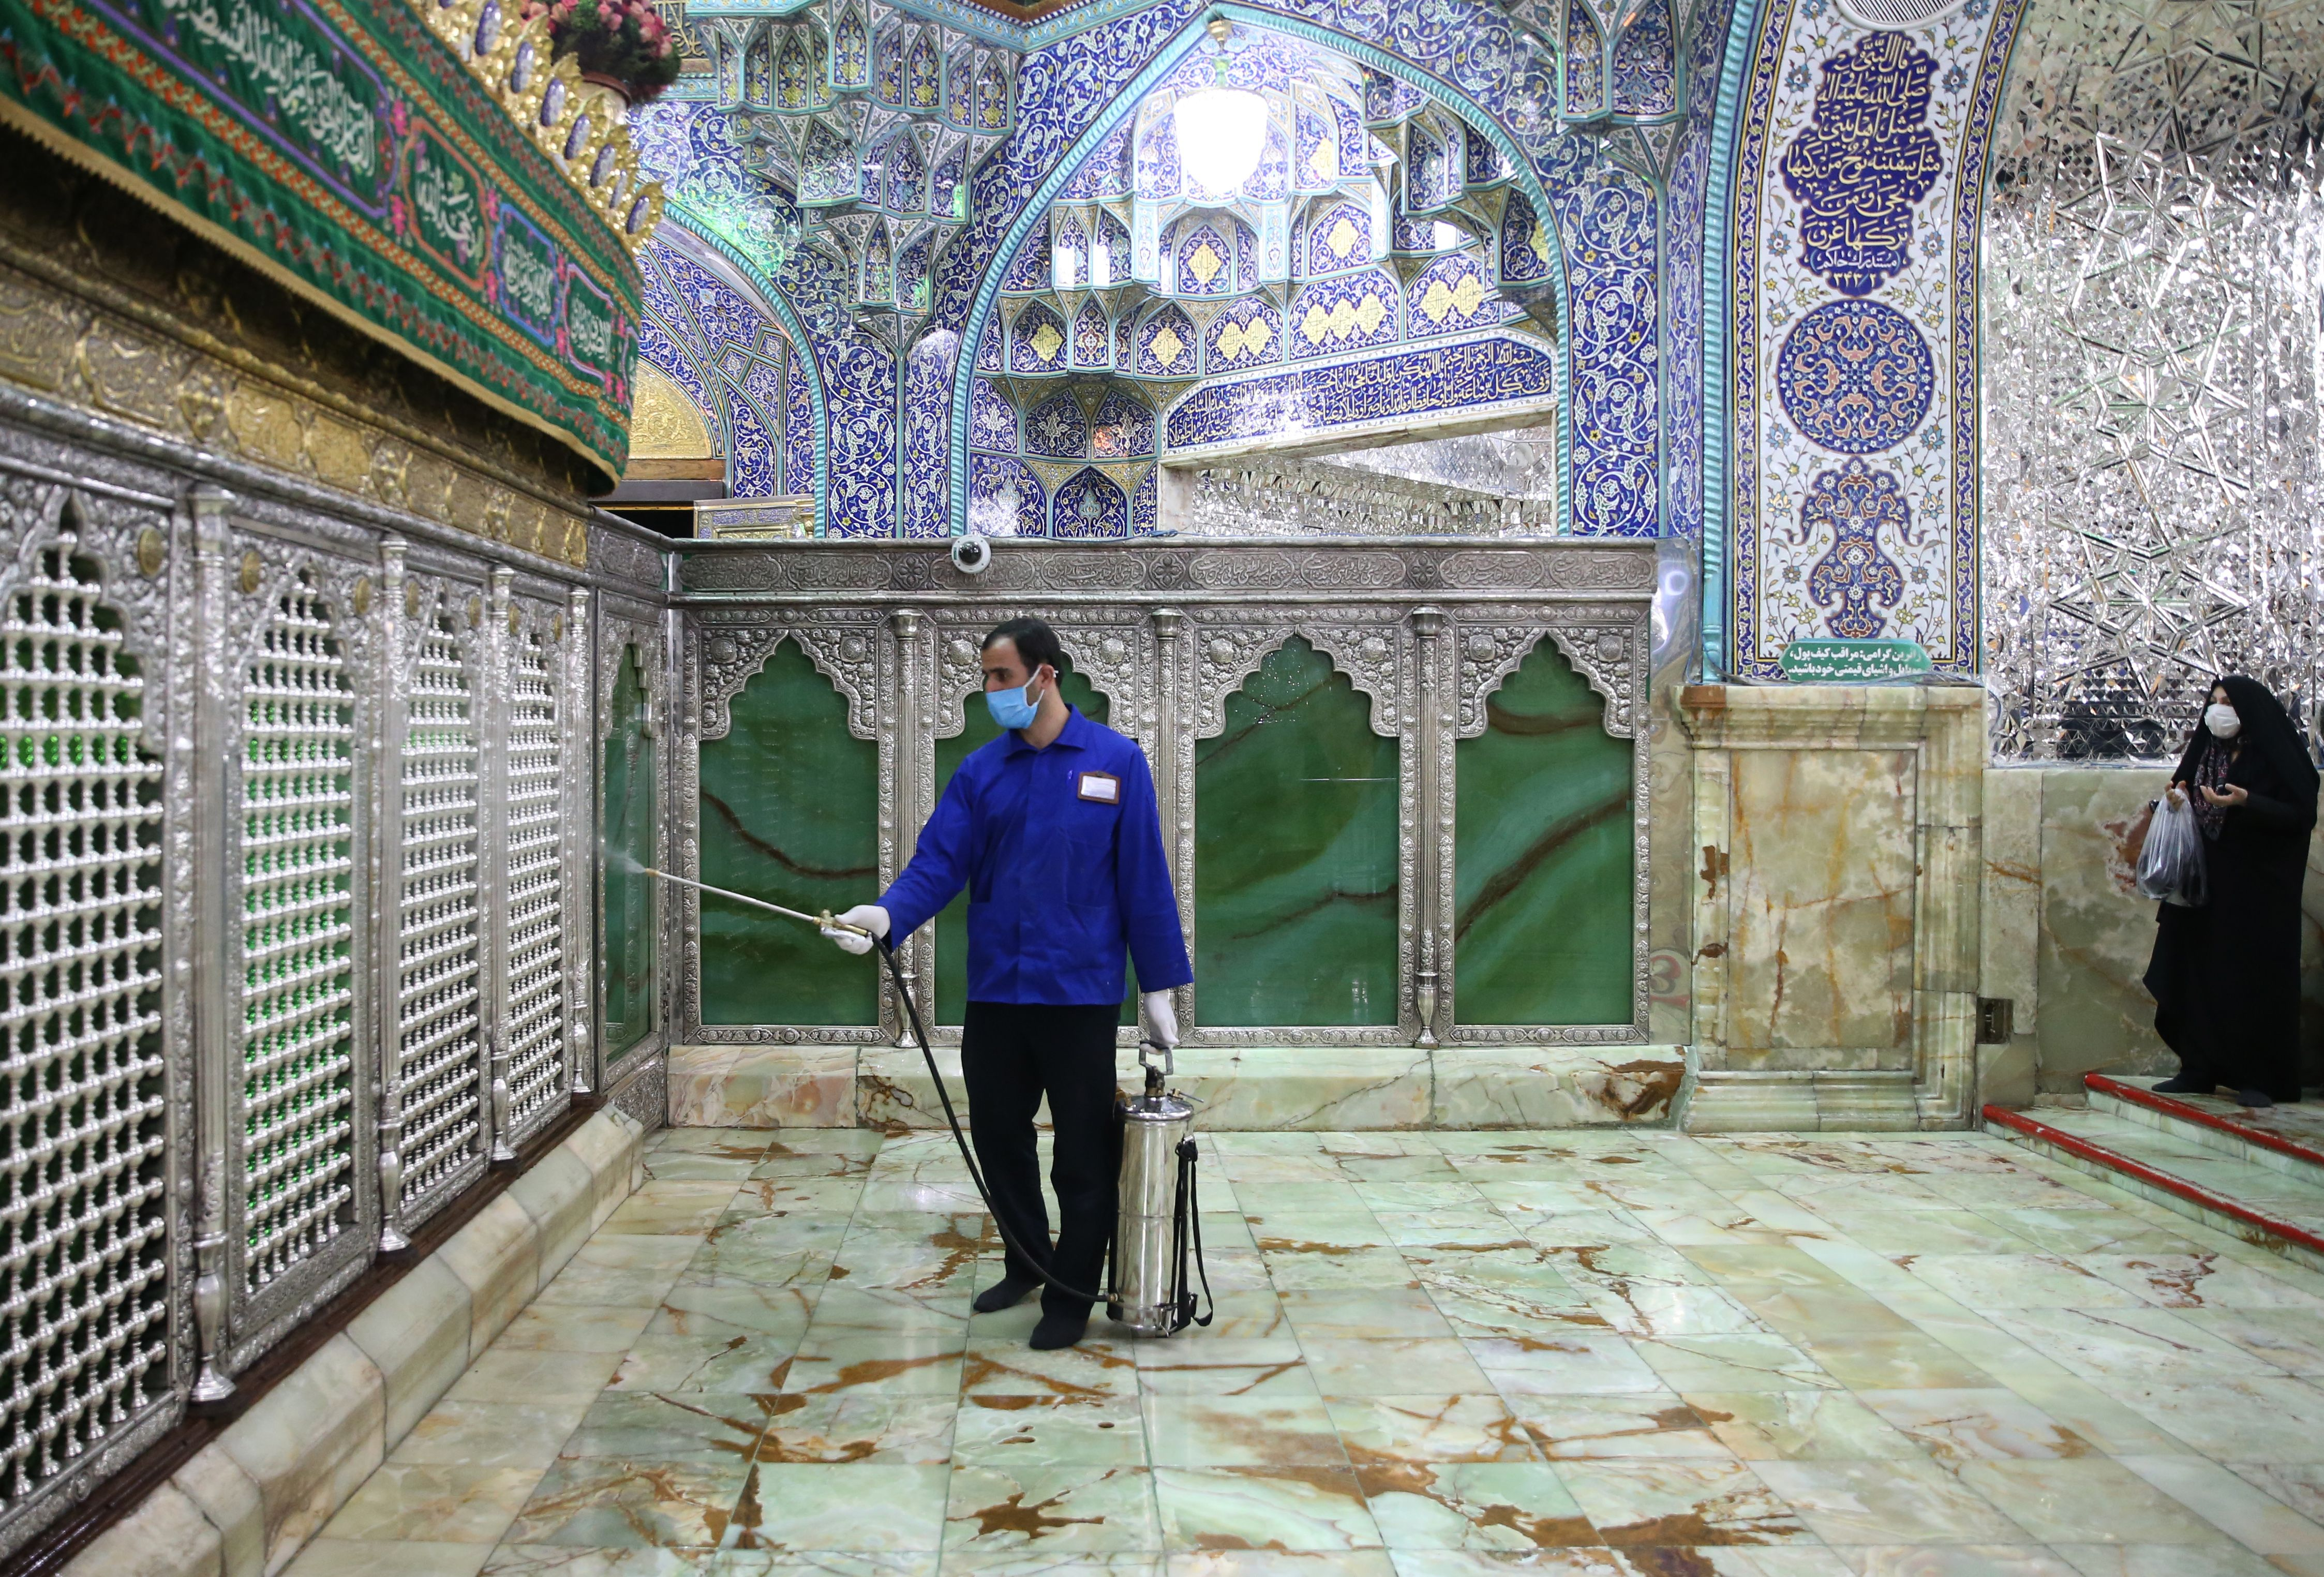 A worker disinfects Qom's Masumeh shrine on Tuesday. The city is the epicenter of Iran's virus outbreak.